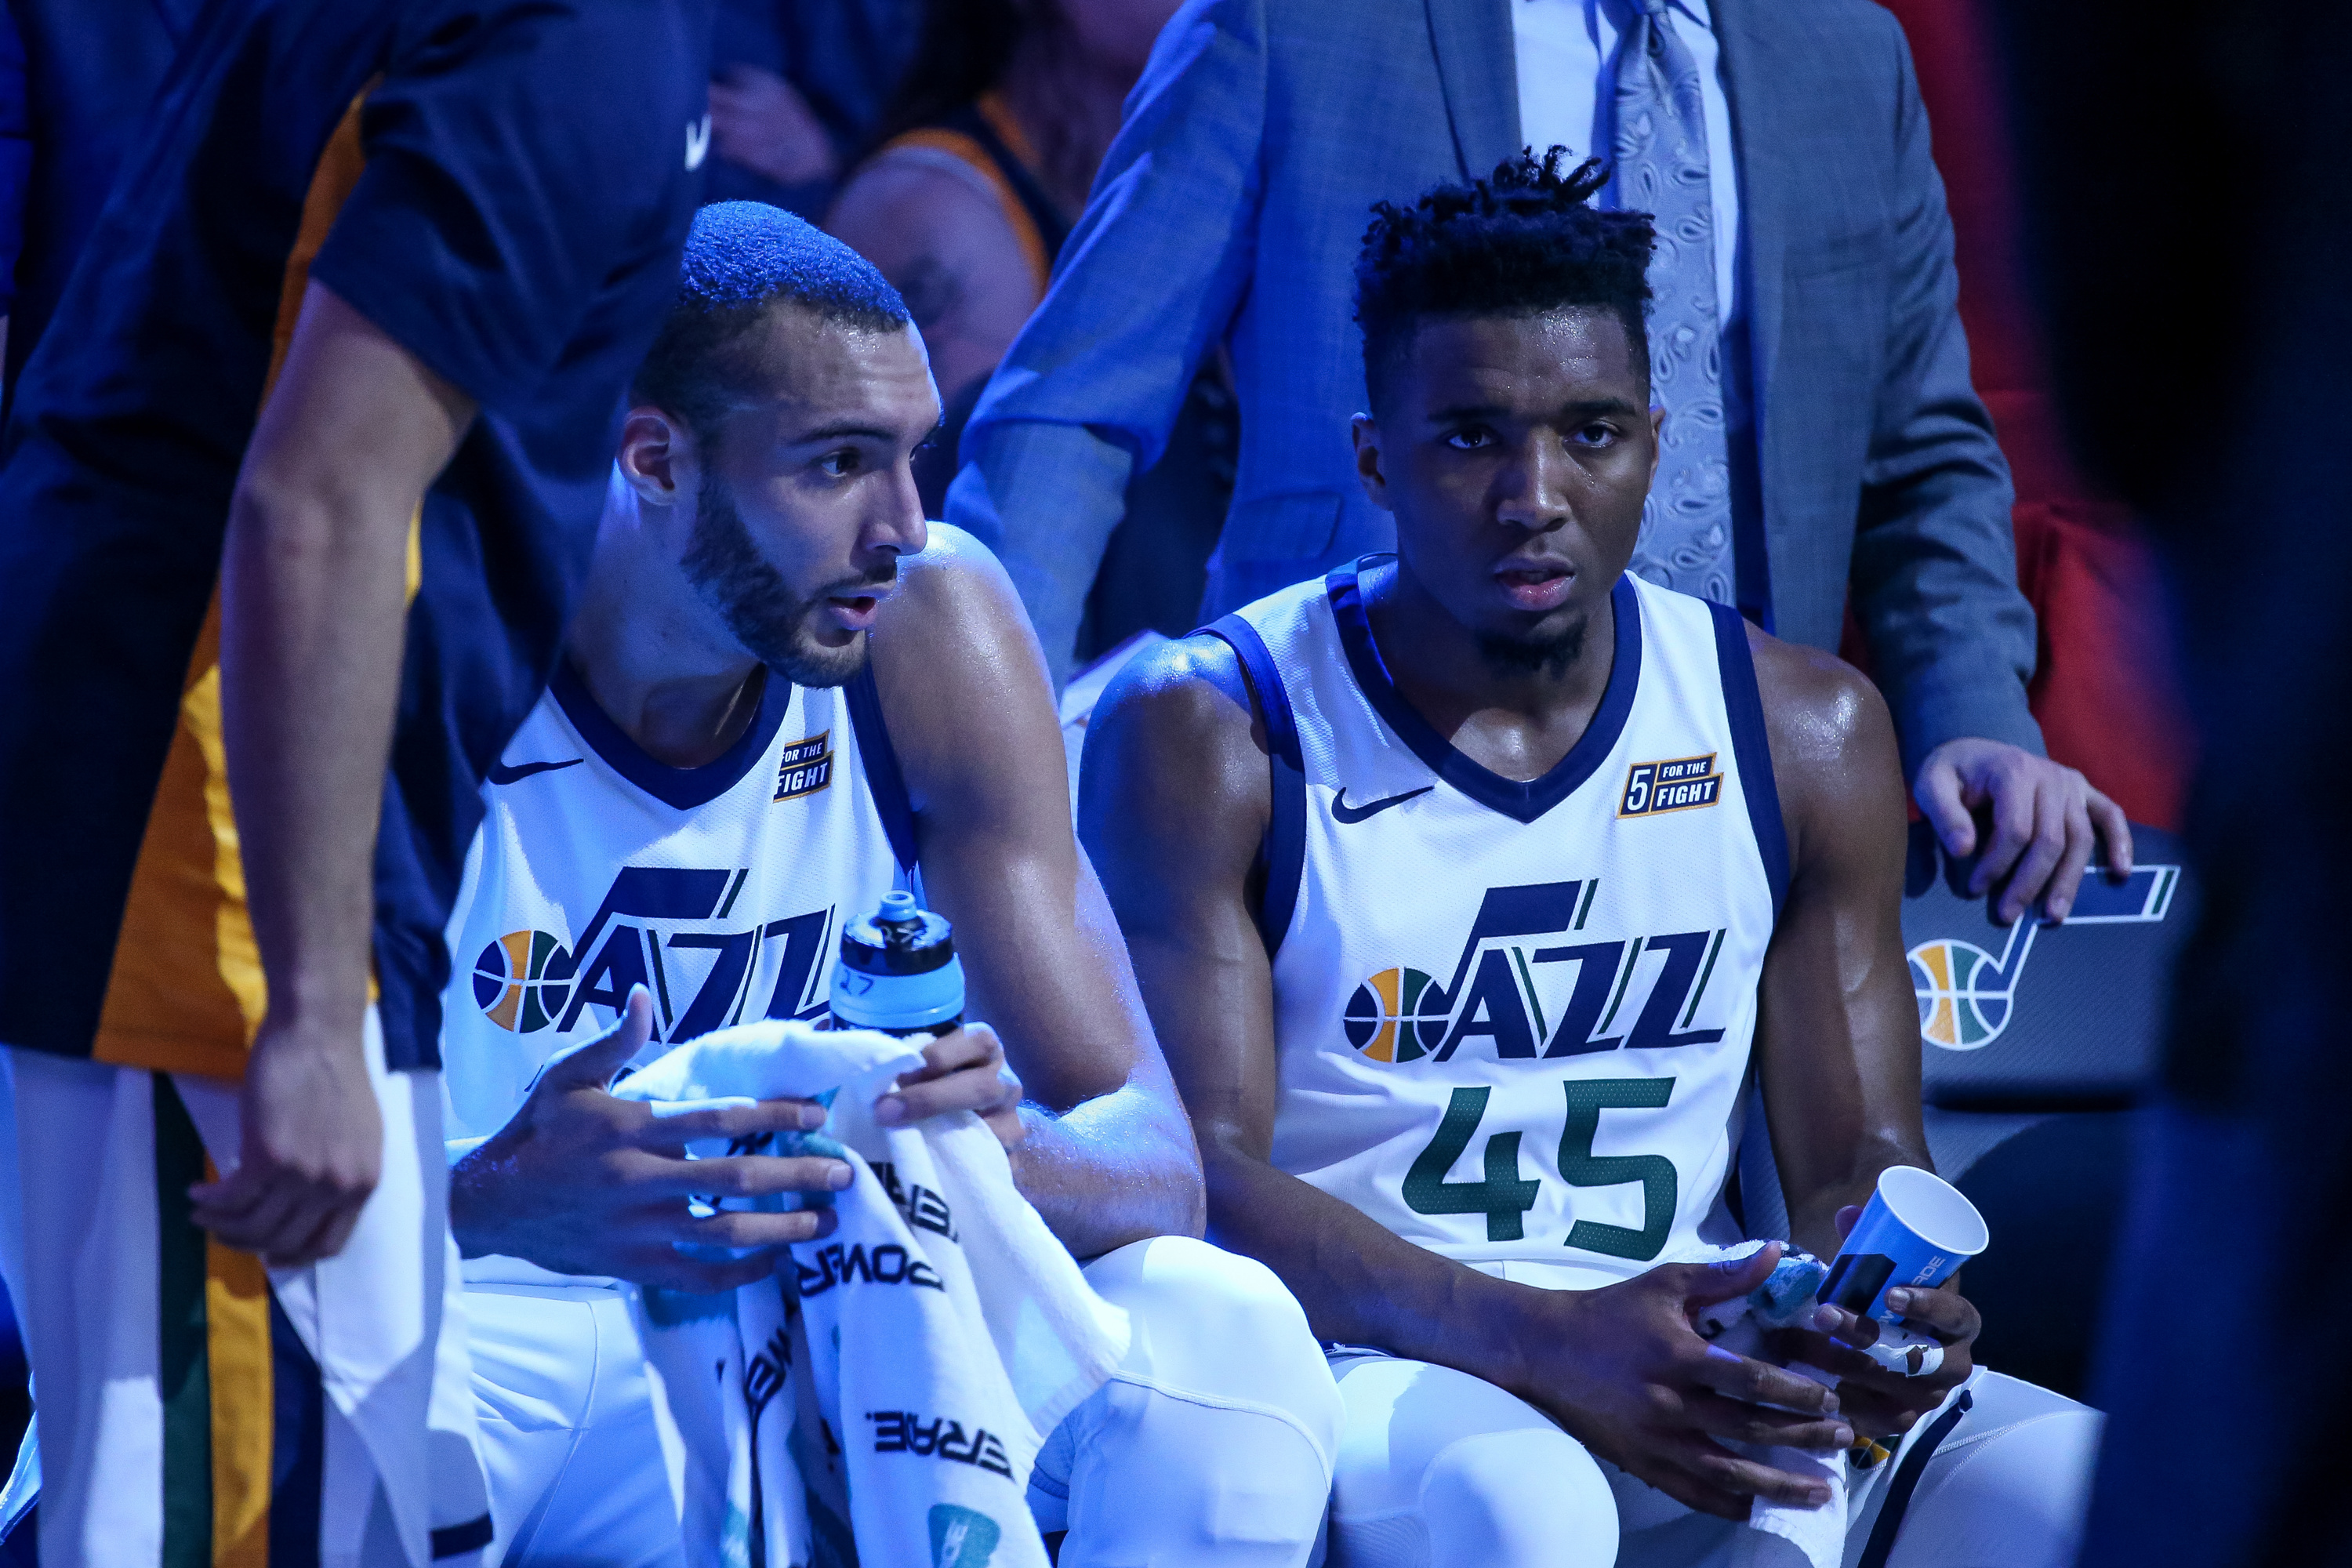 20180411 Utah Jazz center Rudy Gobert (27) and guard Donovan Mitchell (45) sit together during a timeout in the game against the Golden State Warriors at Vivint Arena in Salt Lake City on Tuesday, April 10, 2018.